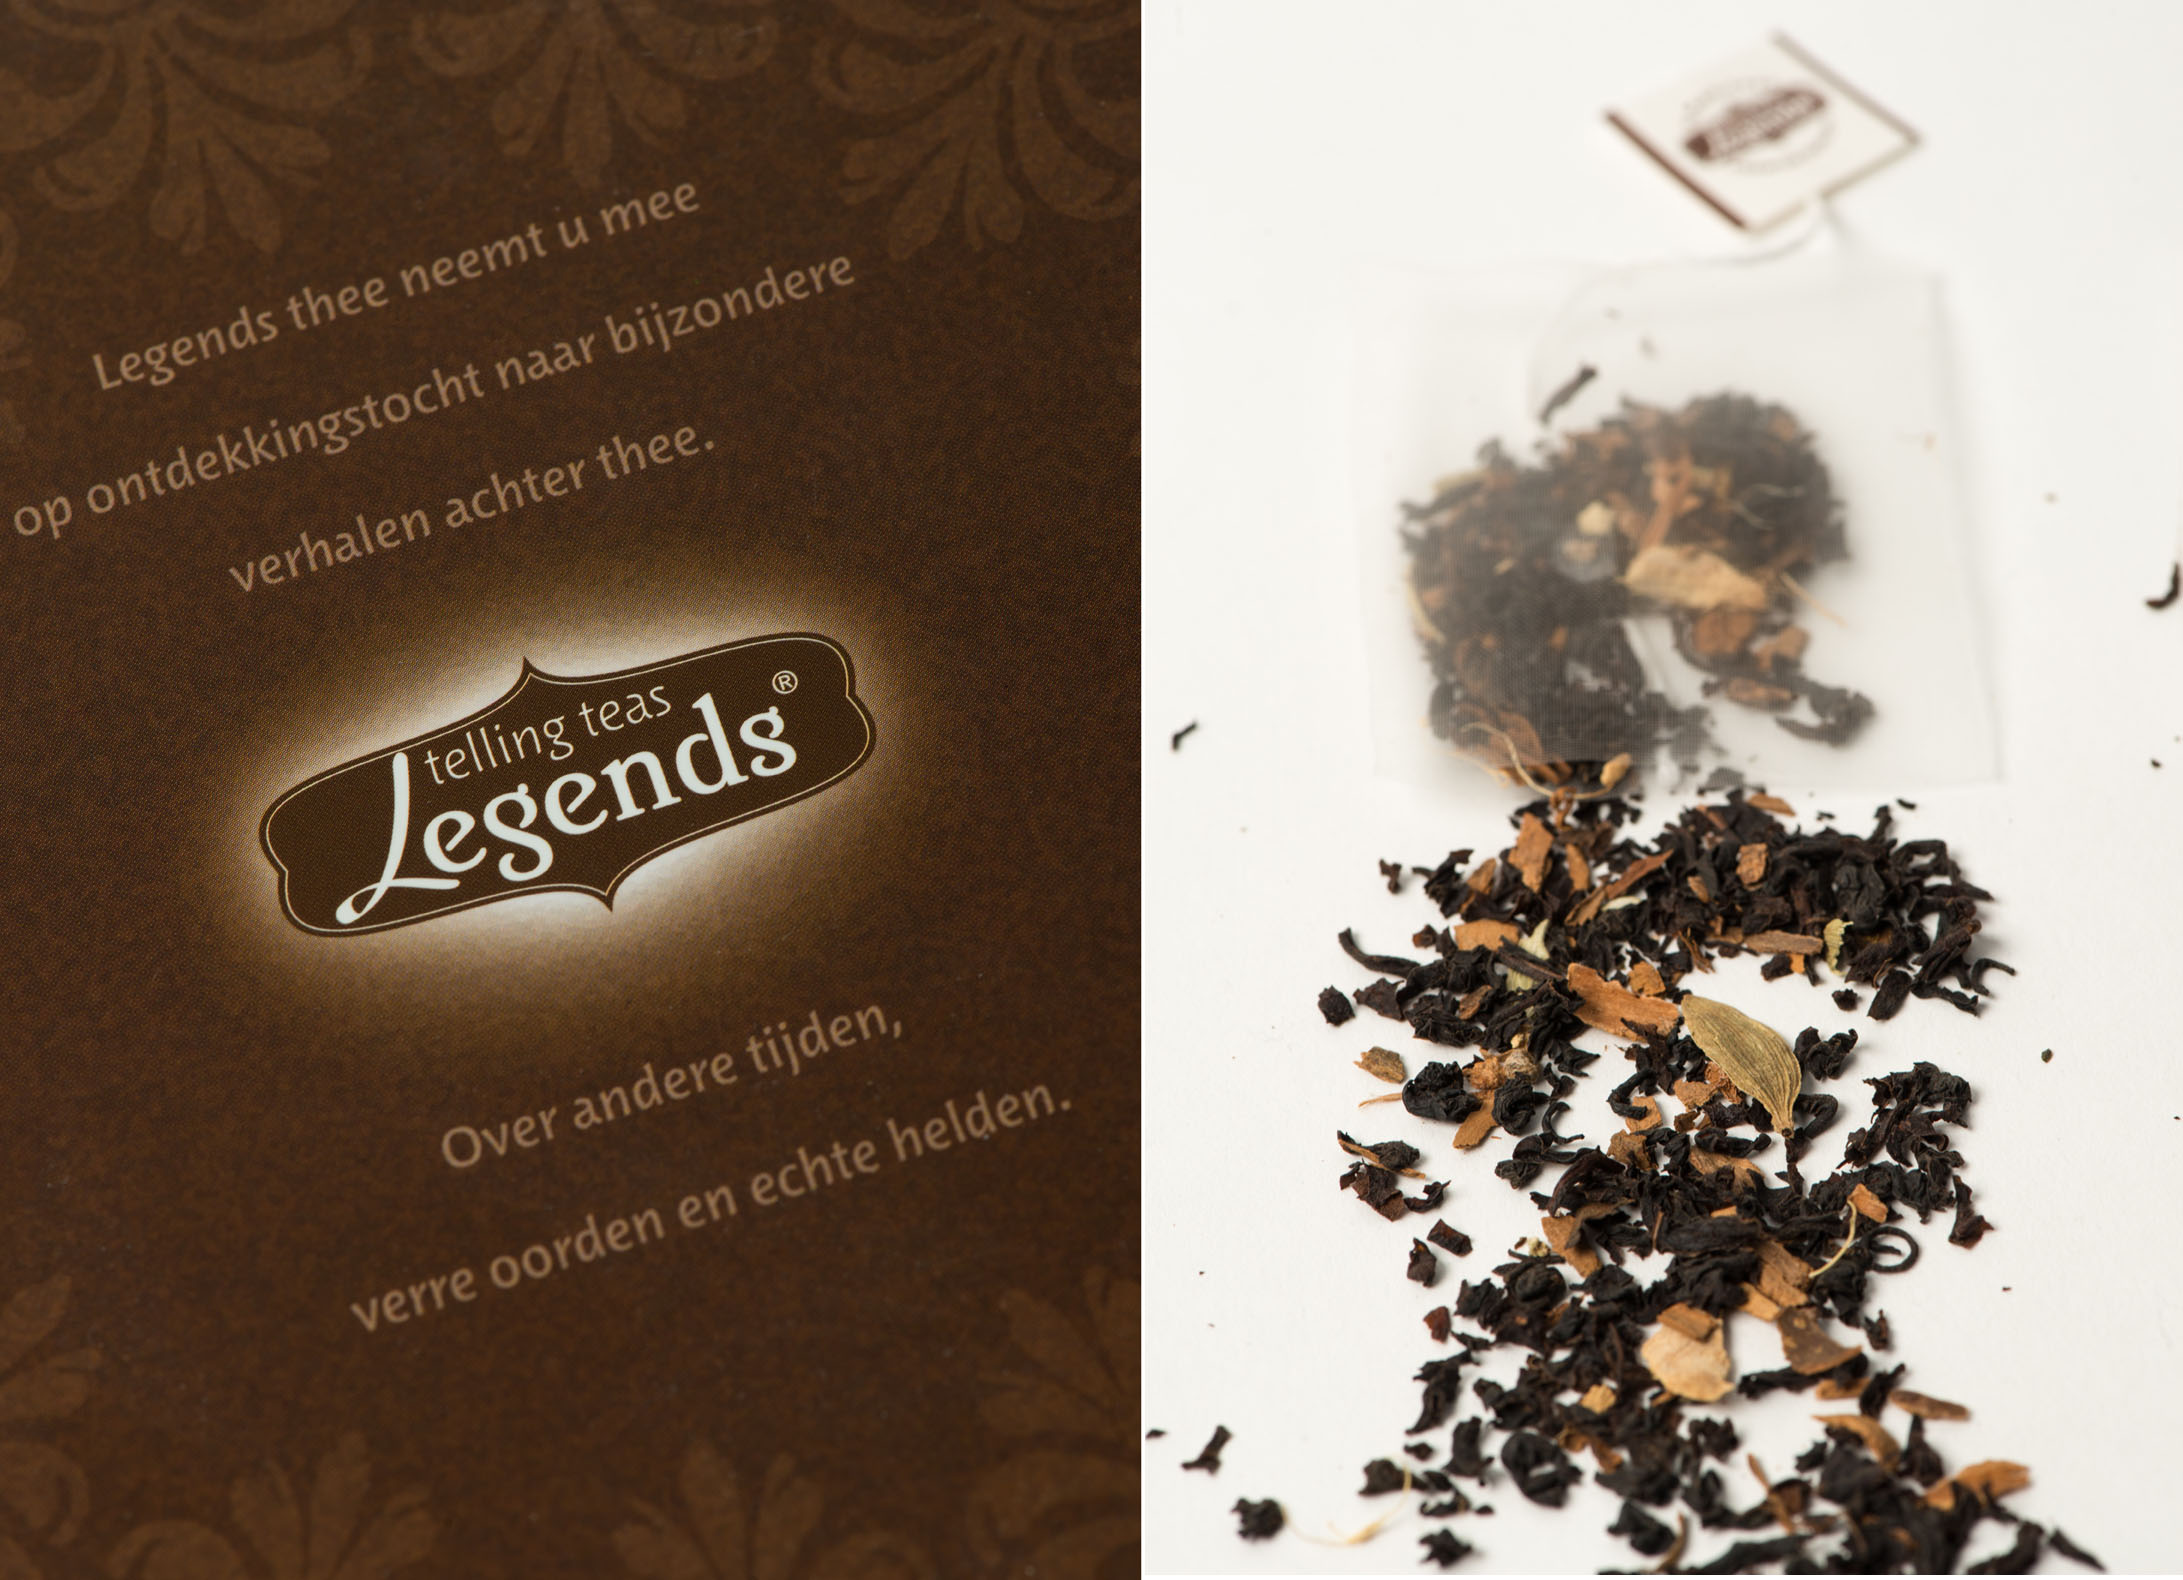 story-telling-logo-losse-tea-legends